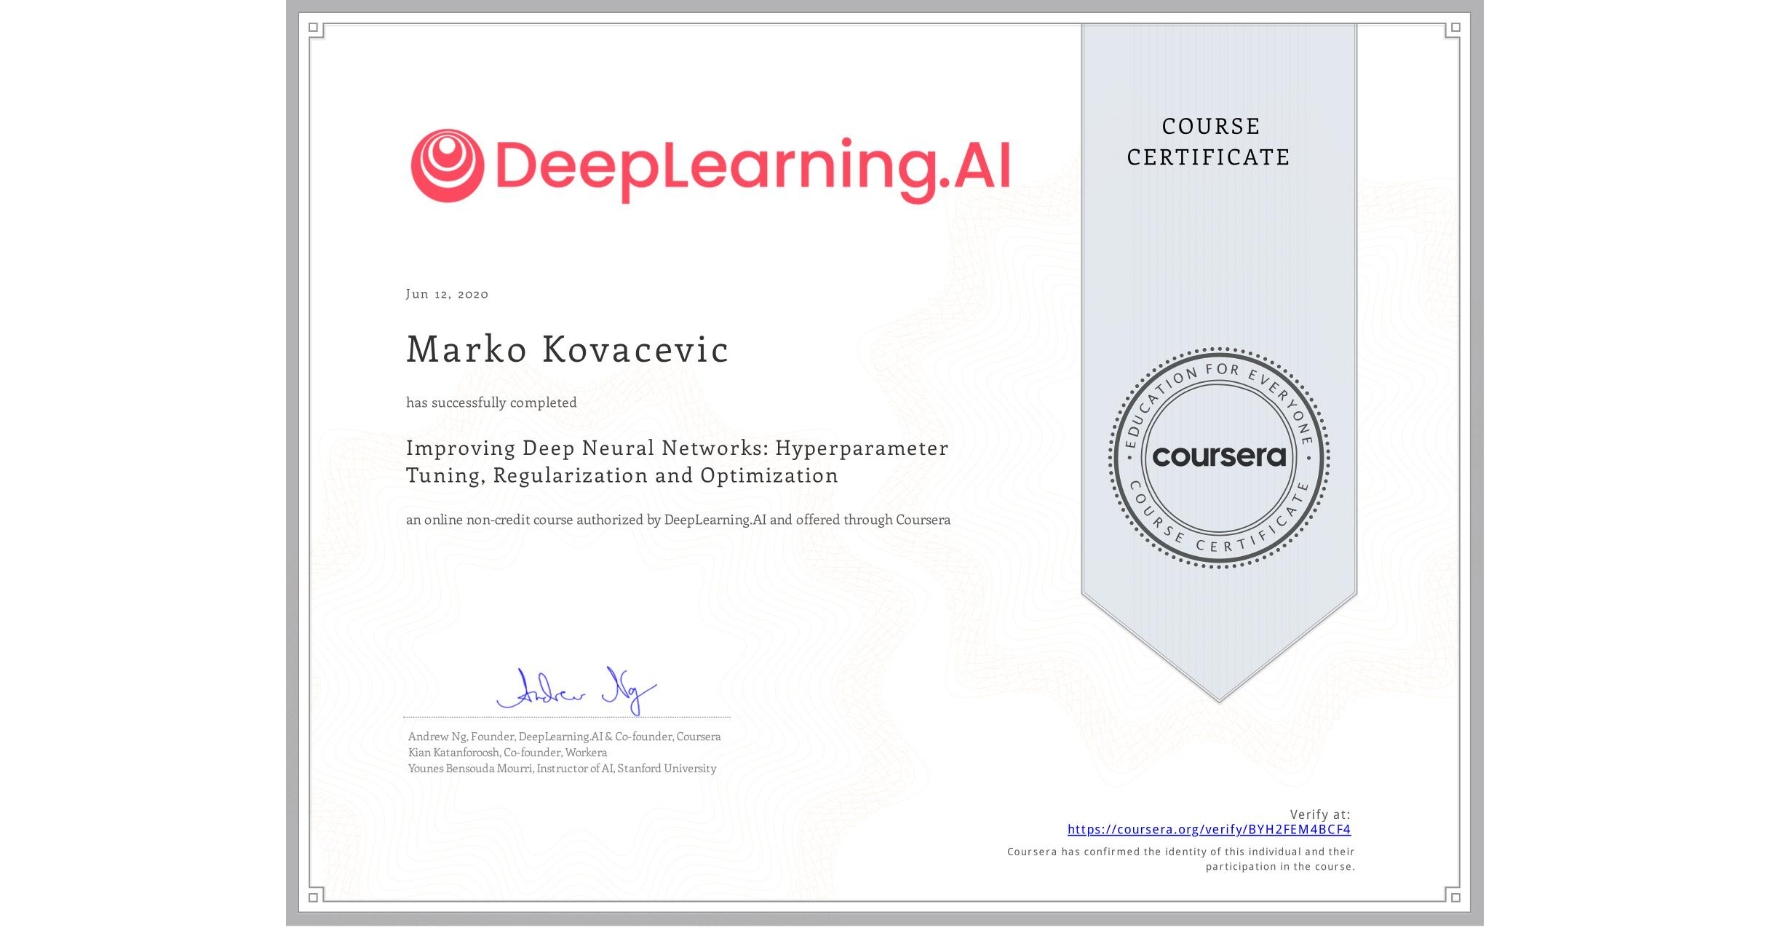 View certificate for Marko Kovacevic, Improving Deep Neural Networks: Hyperparameter Tuning, Regularization and Optimization, an online non-credit course authorized by DeepLearning.AI and offered through Coursera